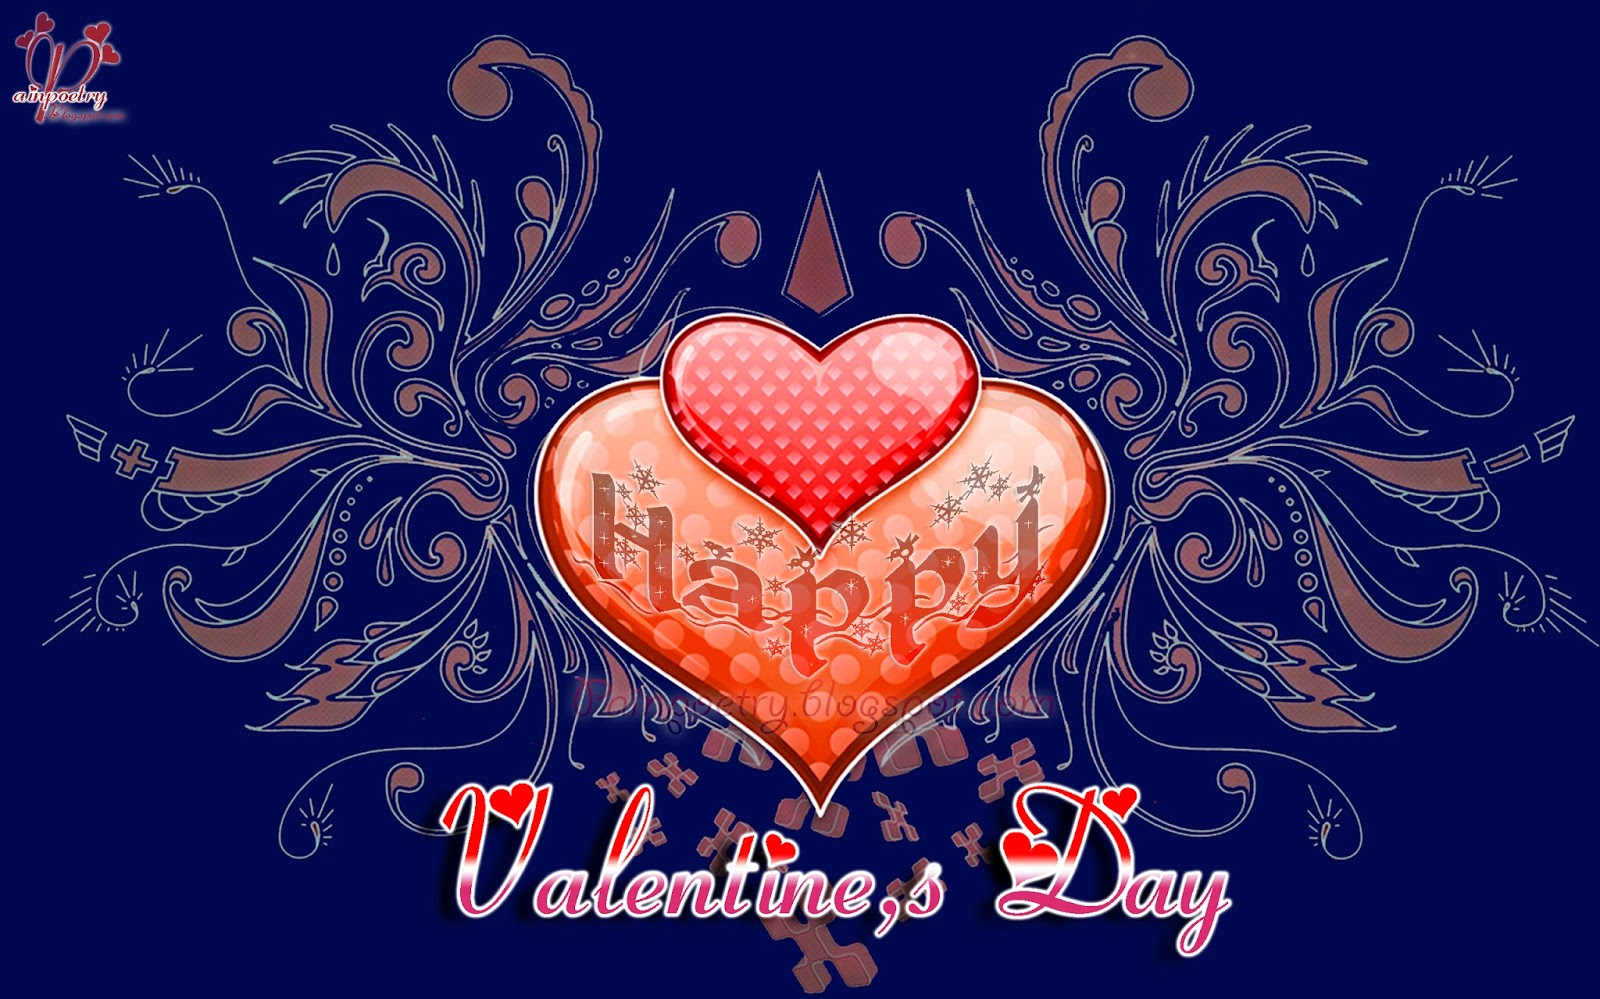 Happy-Valentines-Day-Walpaper-Special-For-Happy-Valentines-Day-Image-HD